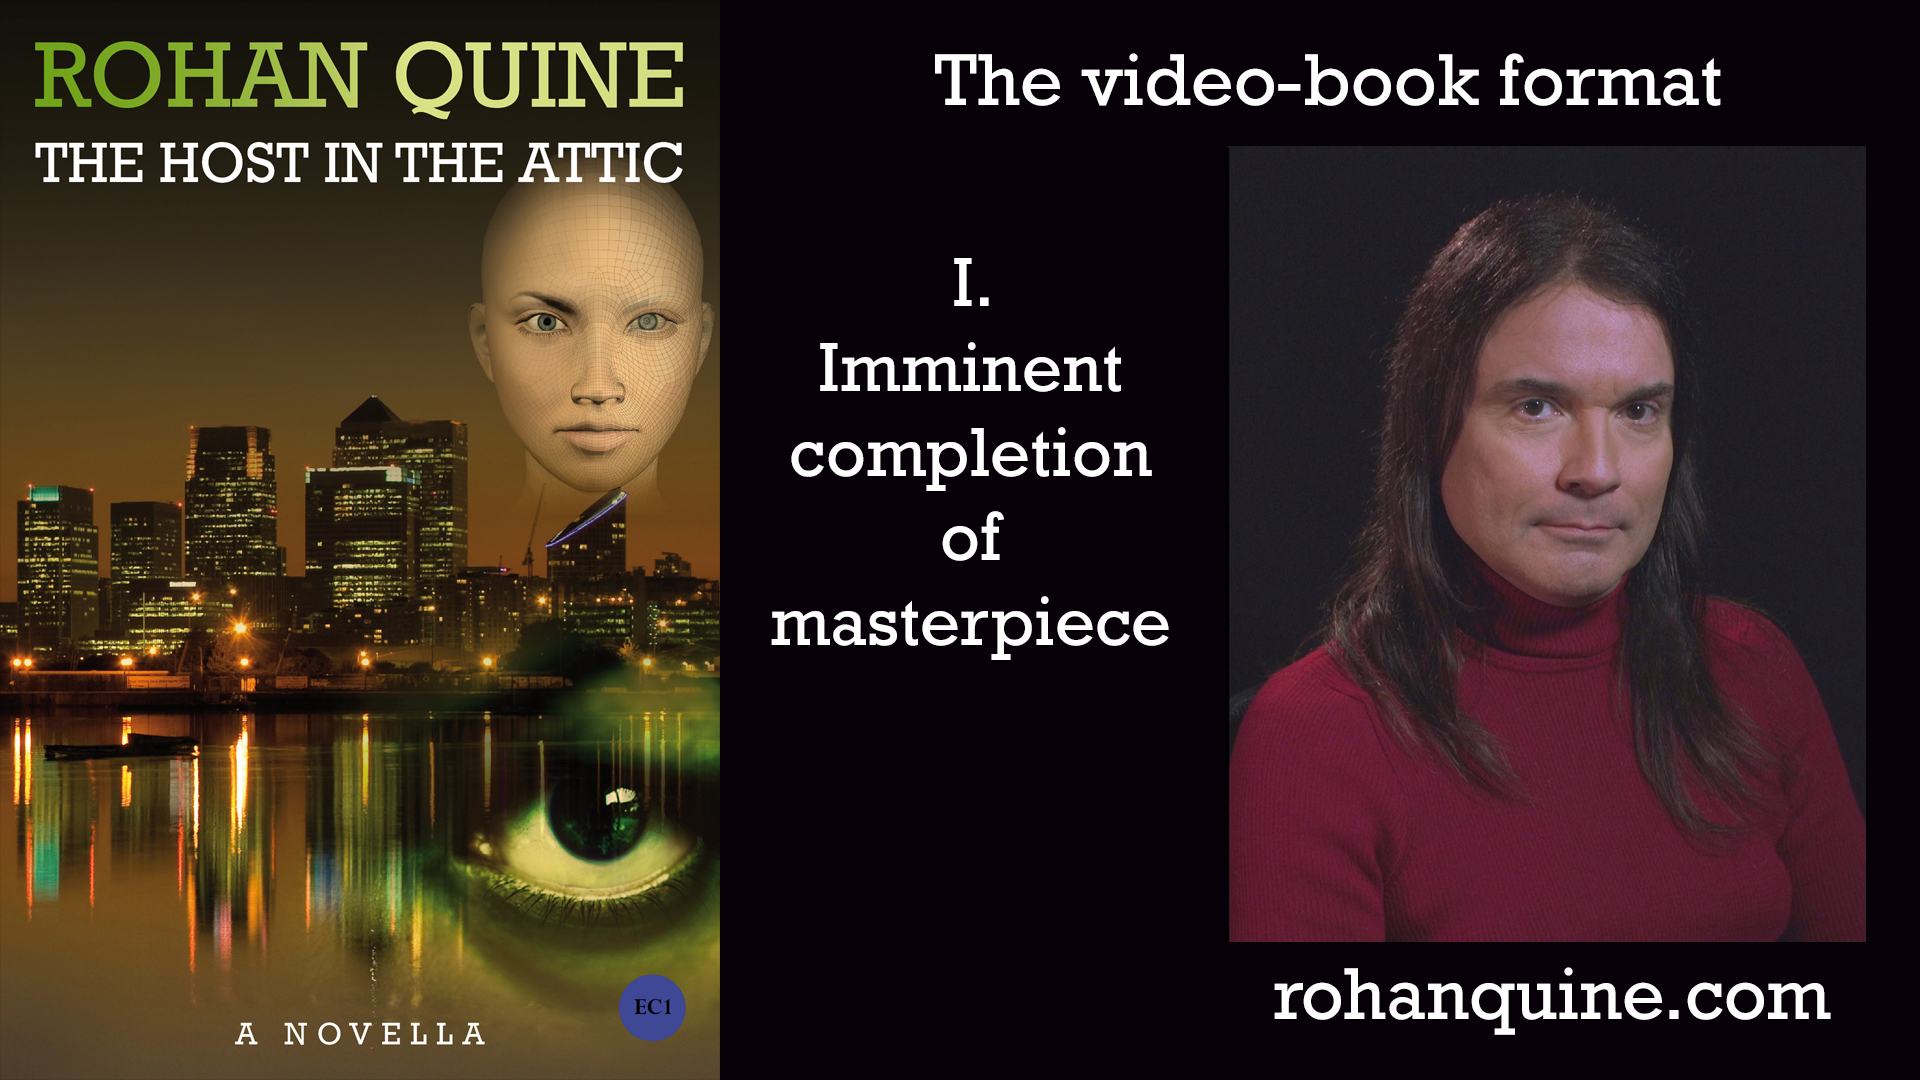 THE HOST IN THE ATTIC by Rohan Quine - video-book format - chapter I